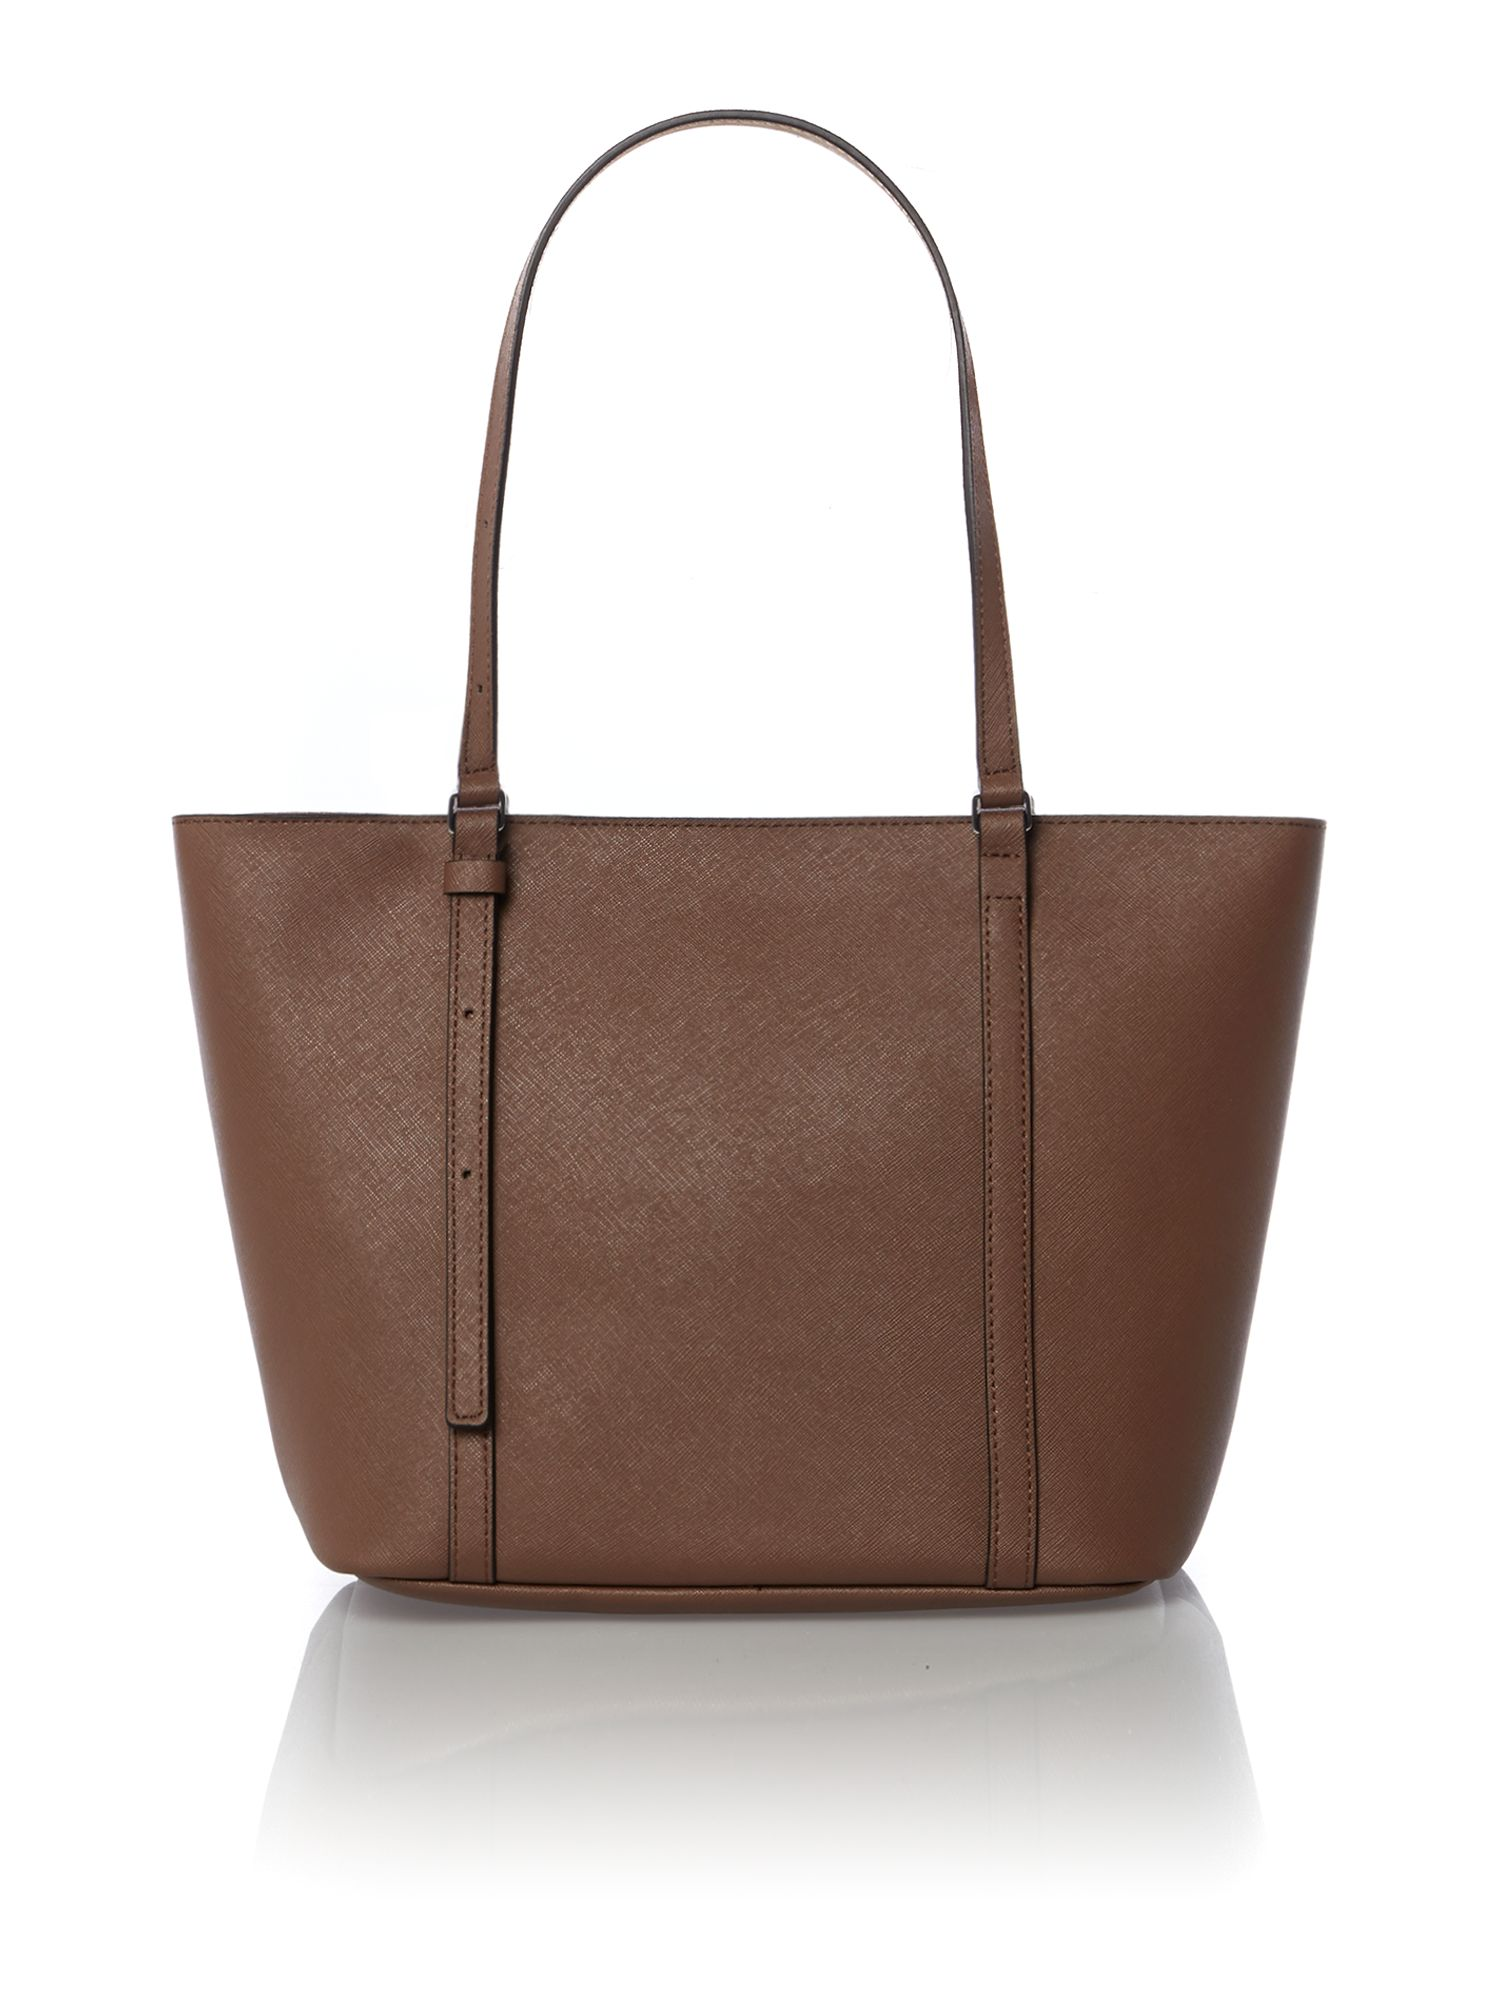 Sofie taupe medium tote bag